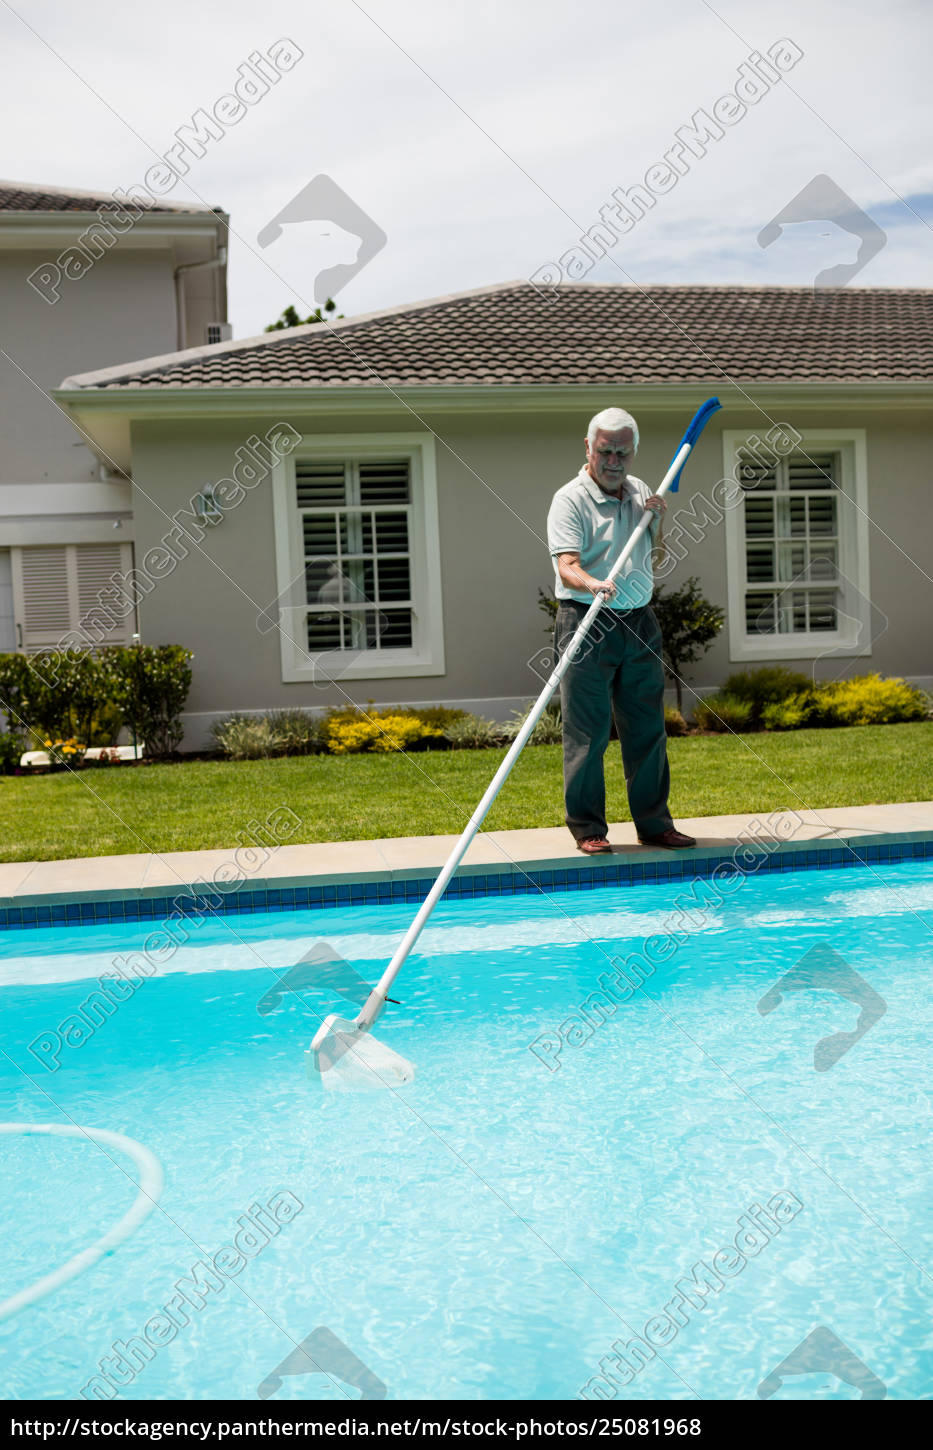 Royalty free photo 25081968 - Senior man cleaning swimming pool